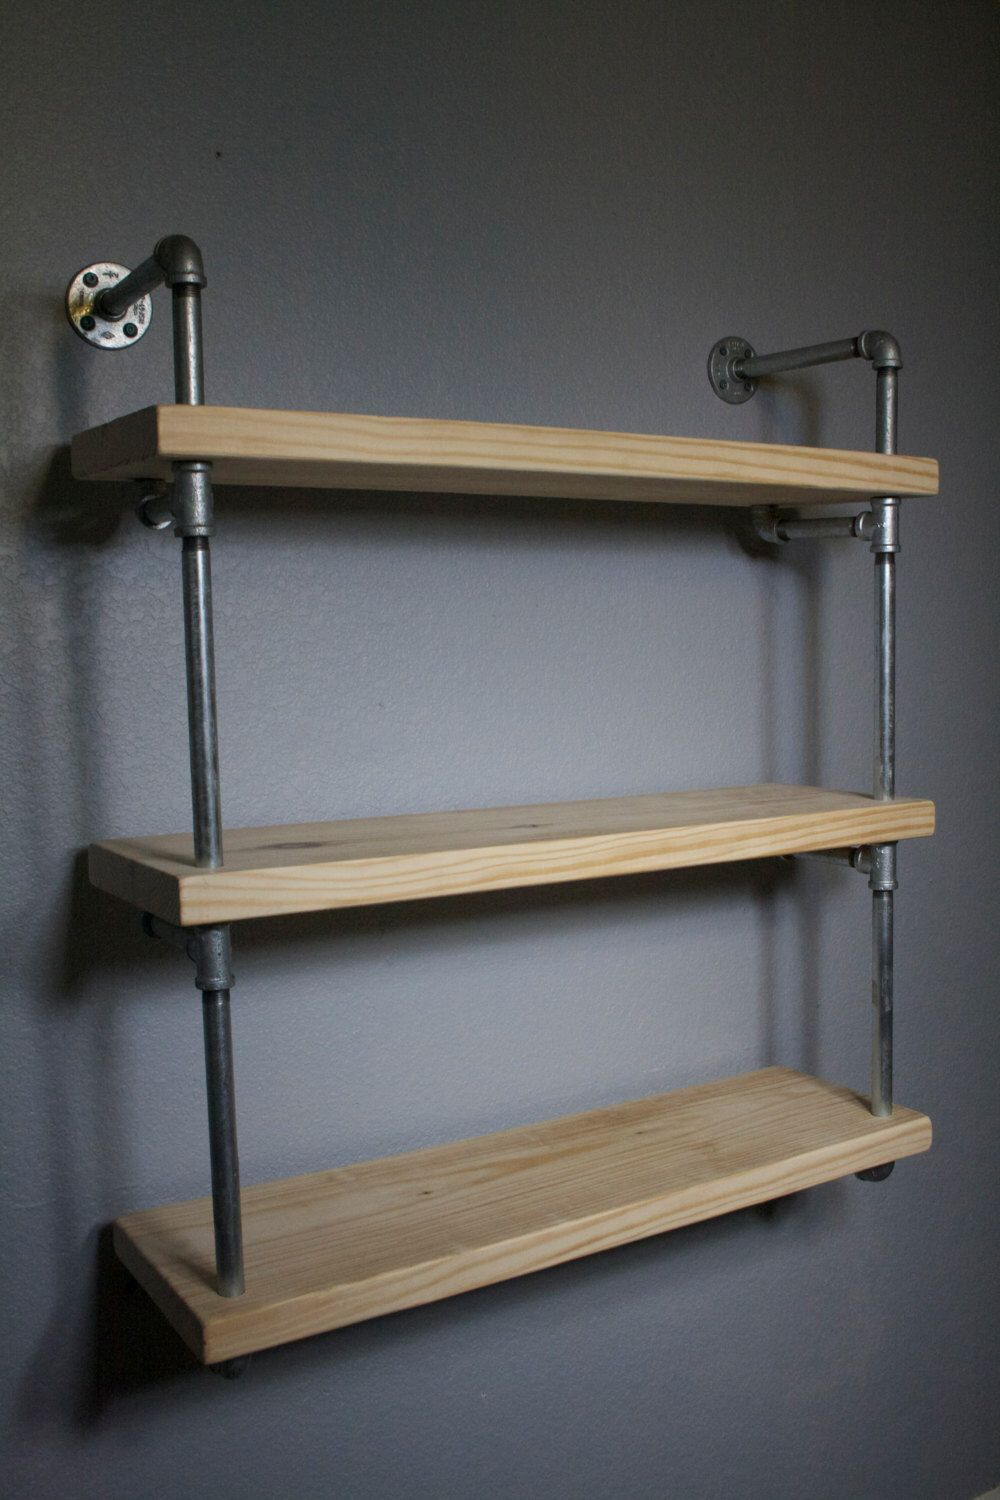 pin by industrial envy on product envy pinterest Wood Shelving Ideas Wall Mounted Shelves